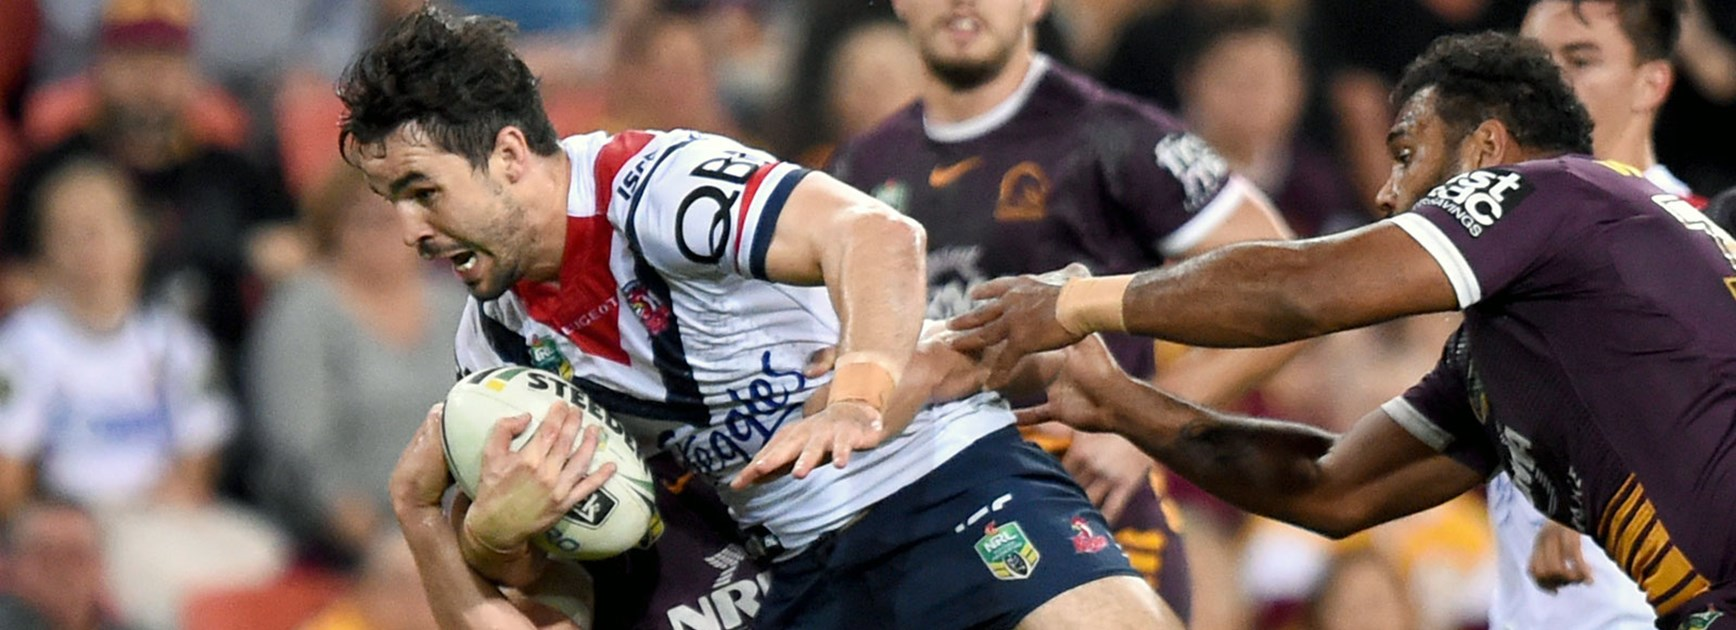 Roosters forward Aidan Guerra against the Broncos.